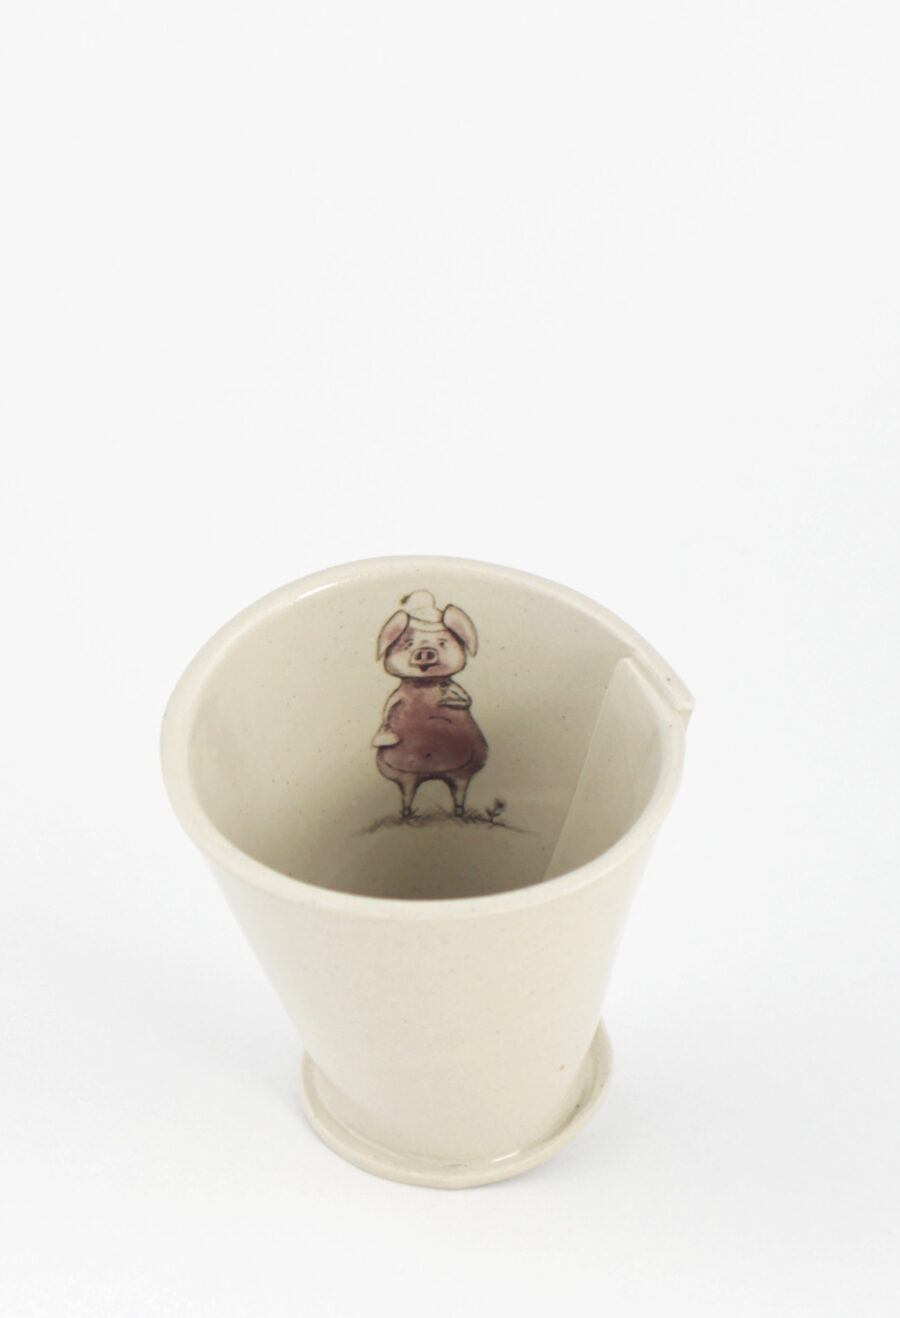 becher-espresso-schwein-pig-keramik-my-deer-illustrated-ceramics